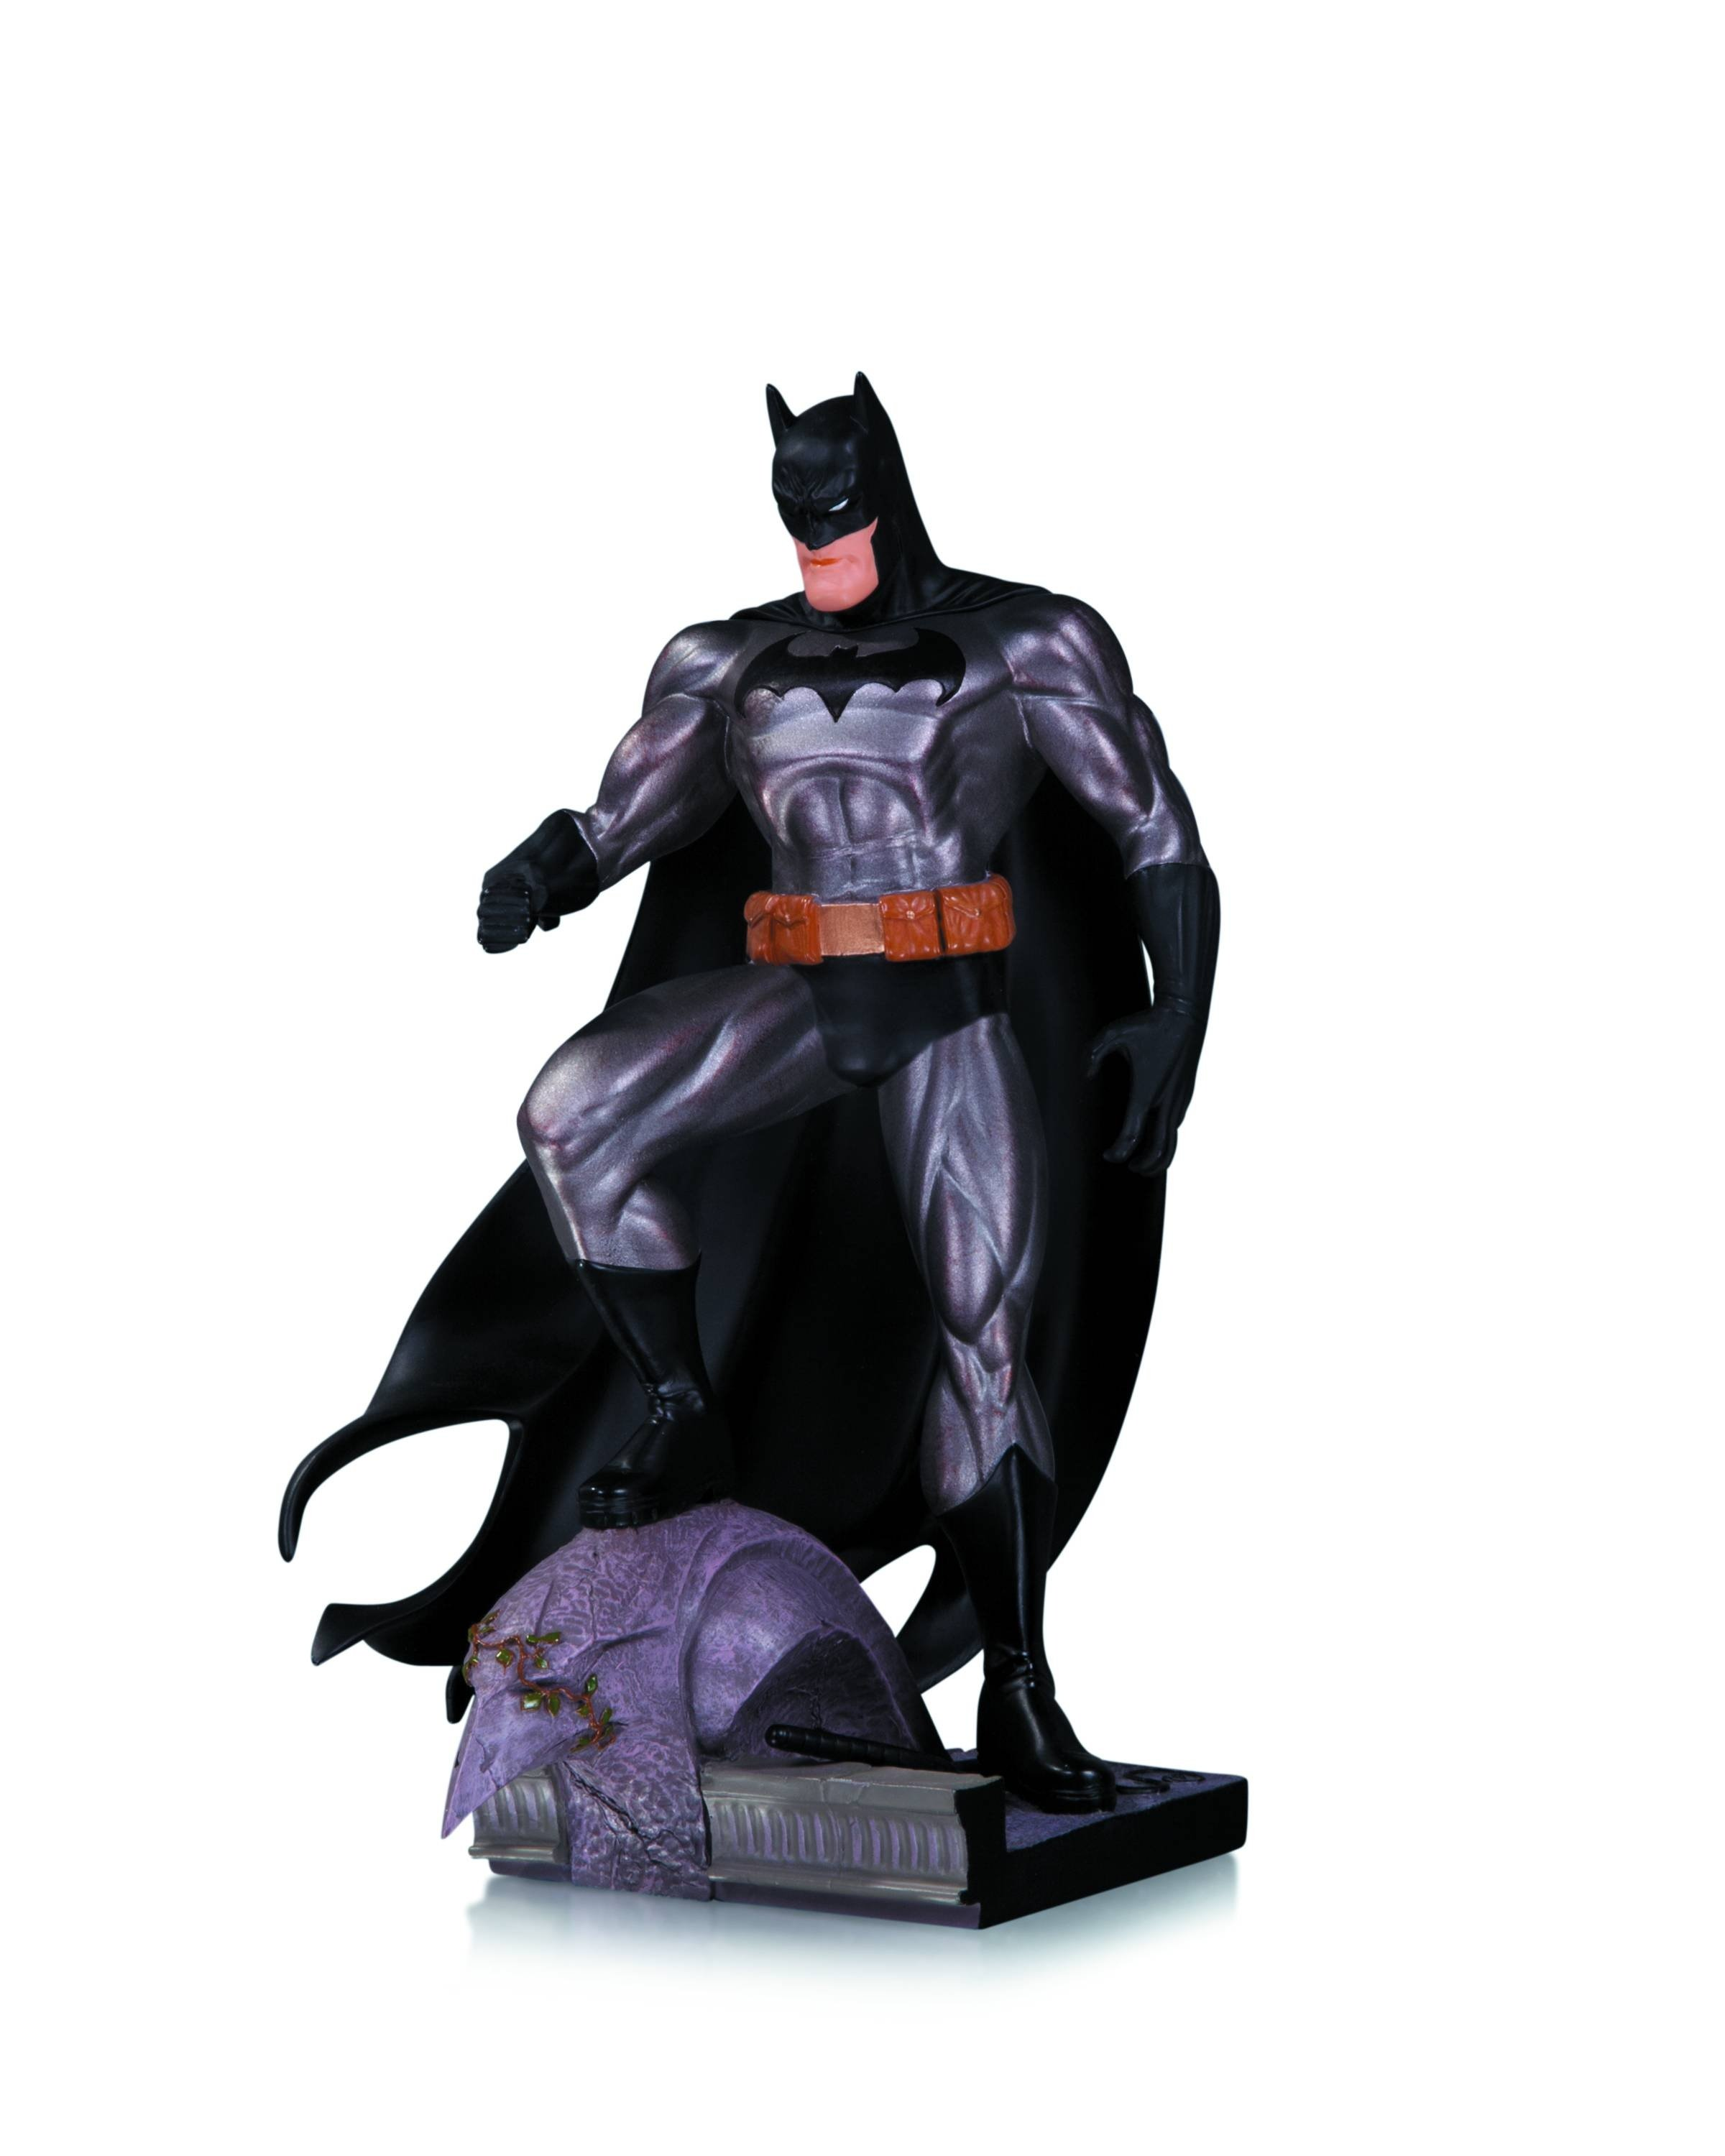 https://0901.nccdn.net/4_2/000/000/079/c81/BATMAN-METALLIC-MINI-STATUE-BY-JIM-LEE-2400x3000.jpg